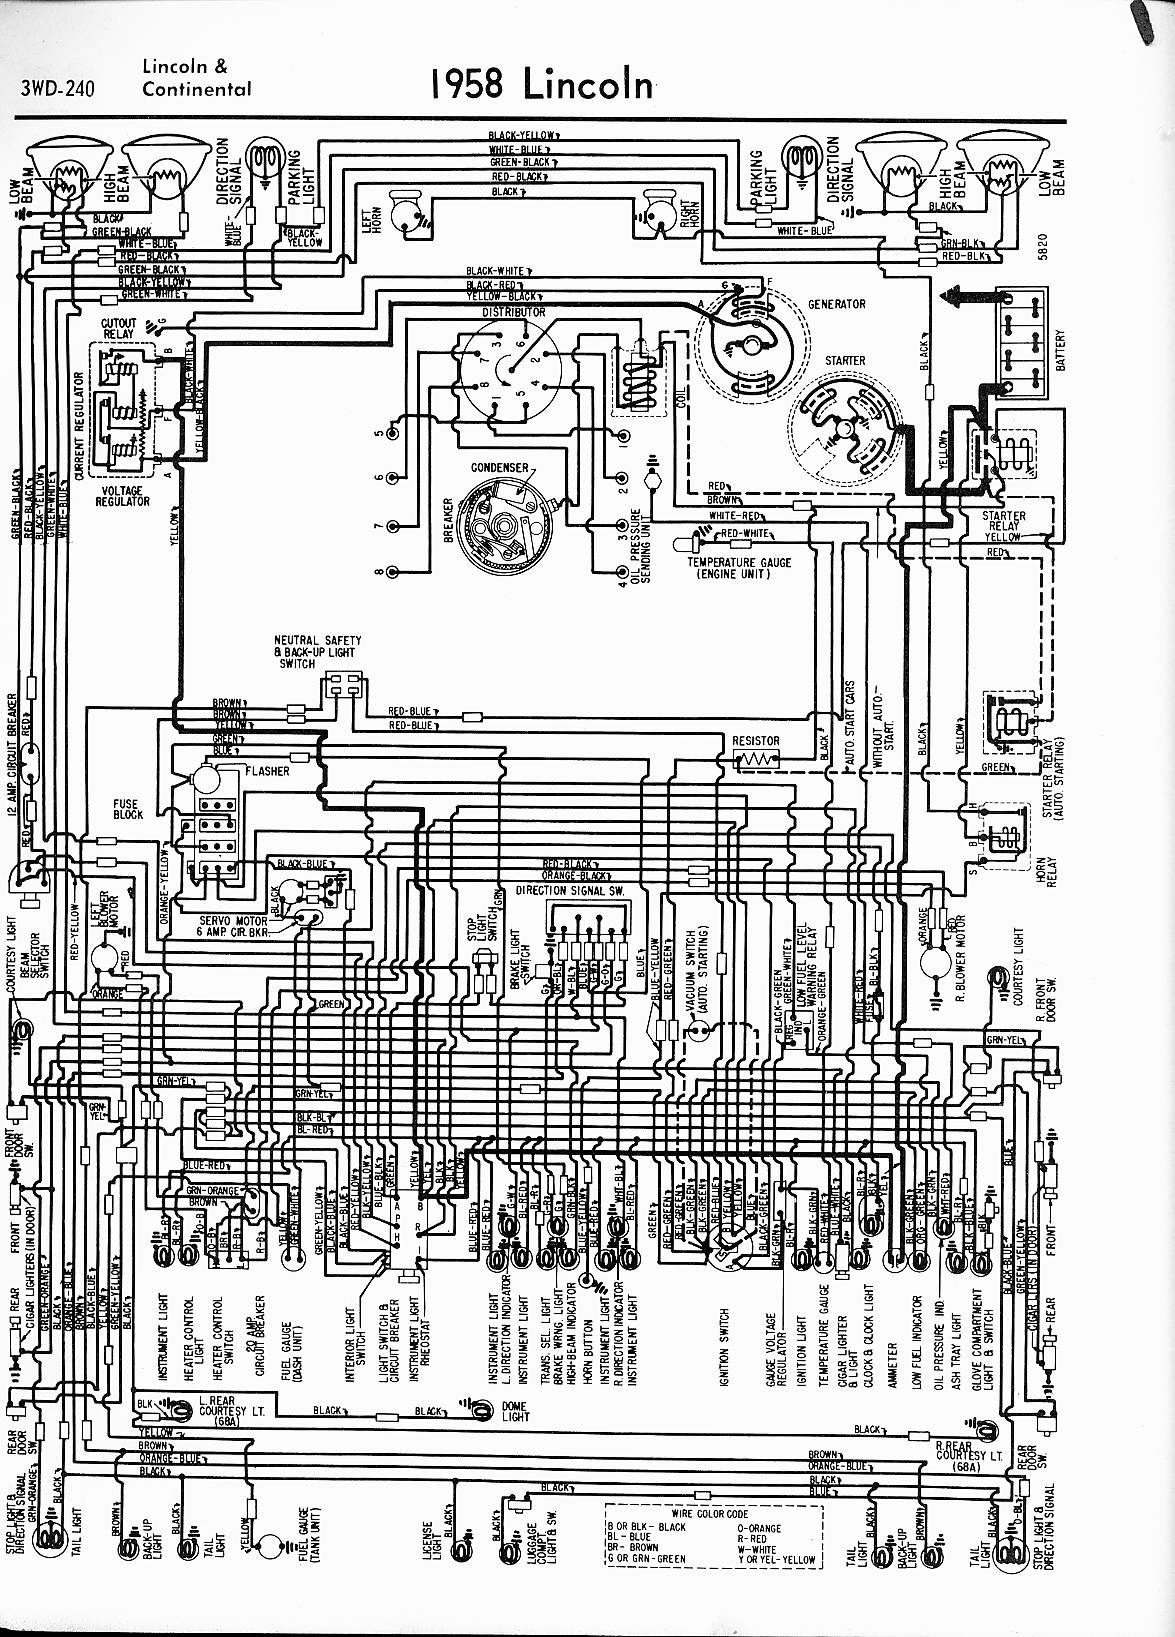 66 Mustang Convertible Wiring Harness Schematics Wiring Data \u2022 1998  Ford Mustang Window Diagram 66 Mustang Floor Diagram